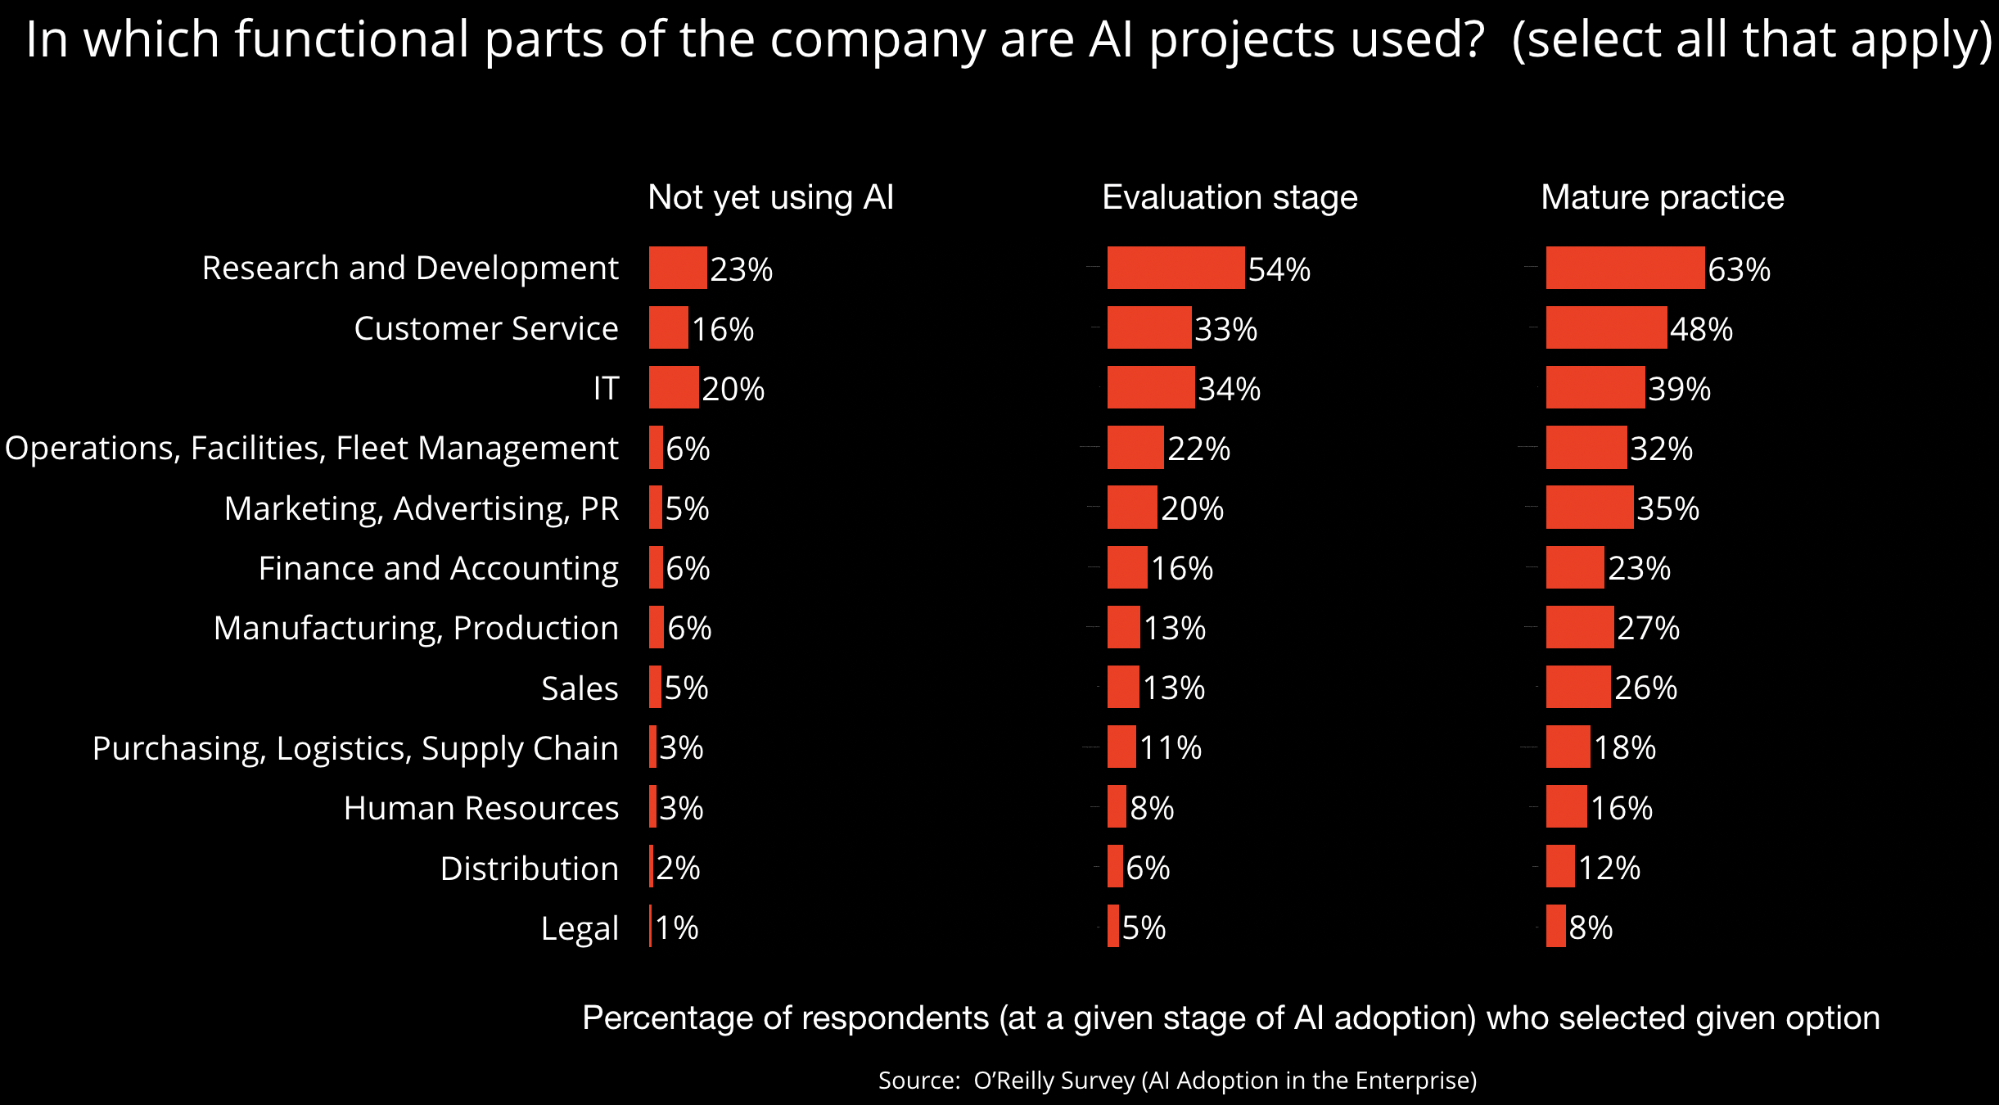 Areas where AI is being applied